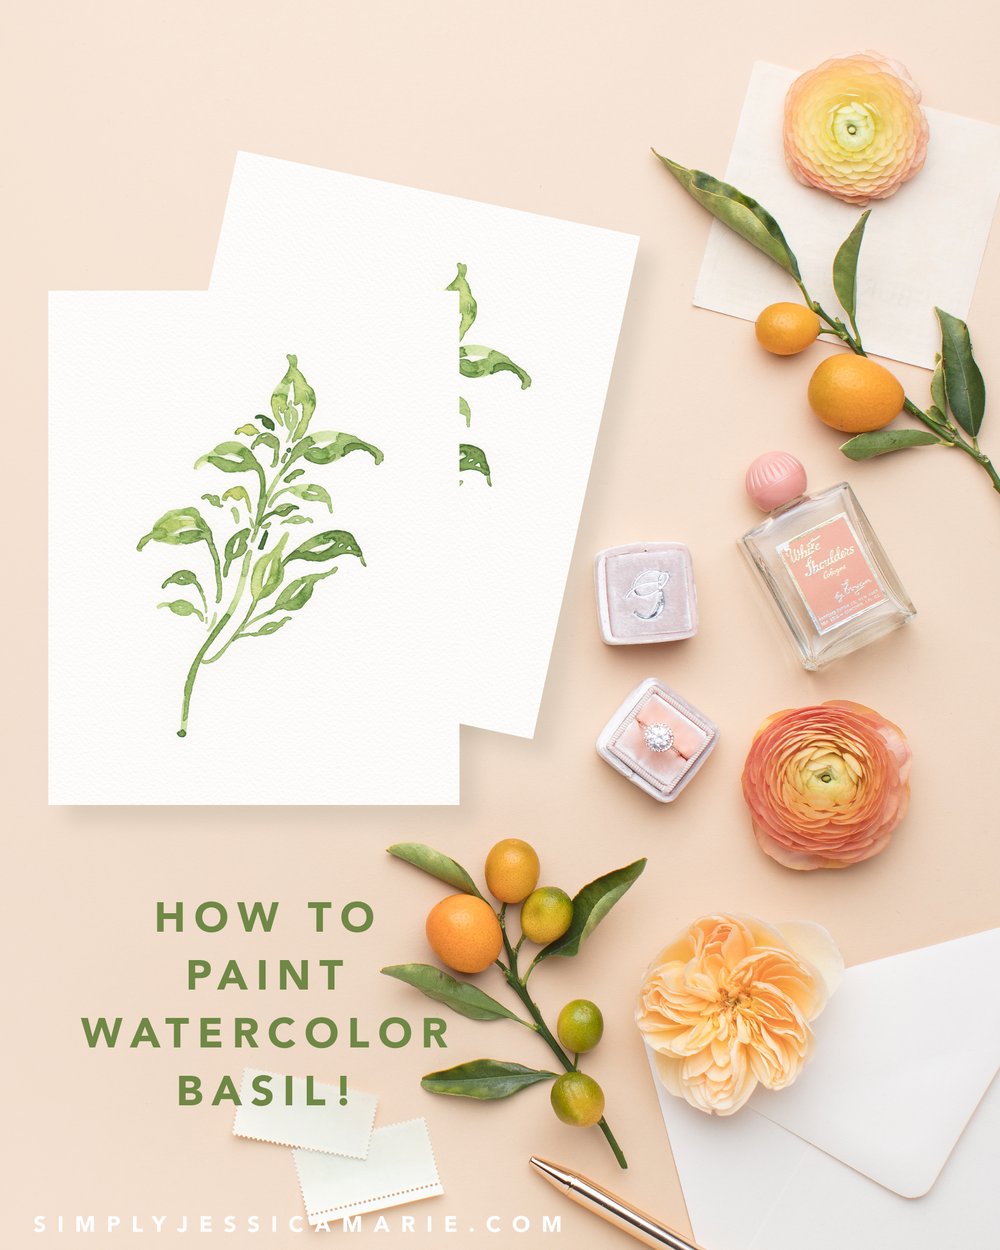 How to paint watercolor basil! Fun and free watercolor videos by Simply Jessica Marie! Learn to mix new colors each week and paint with that color! | SC Stockshop